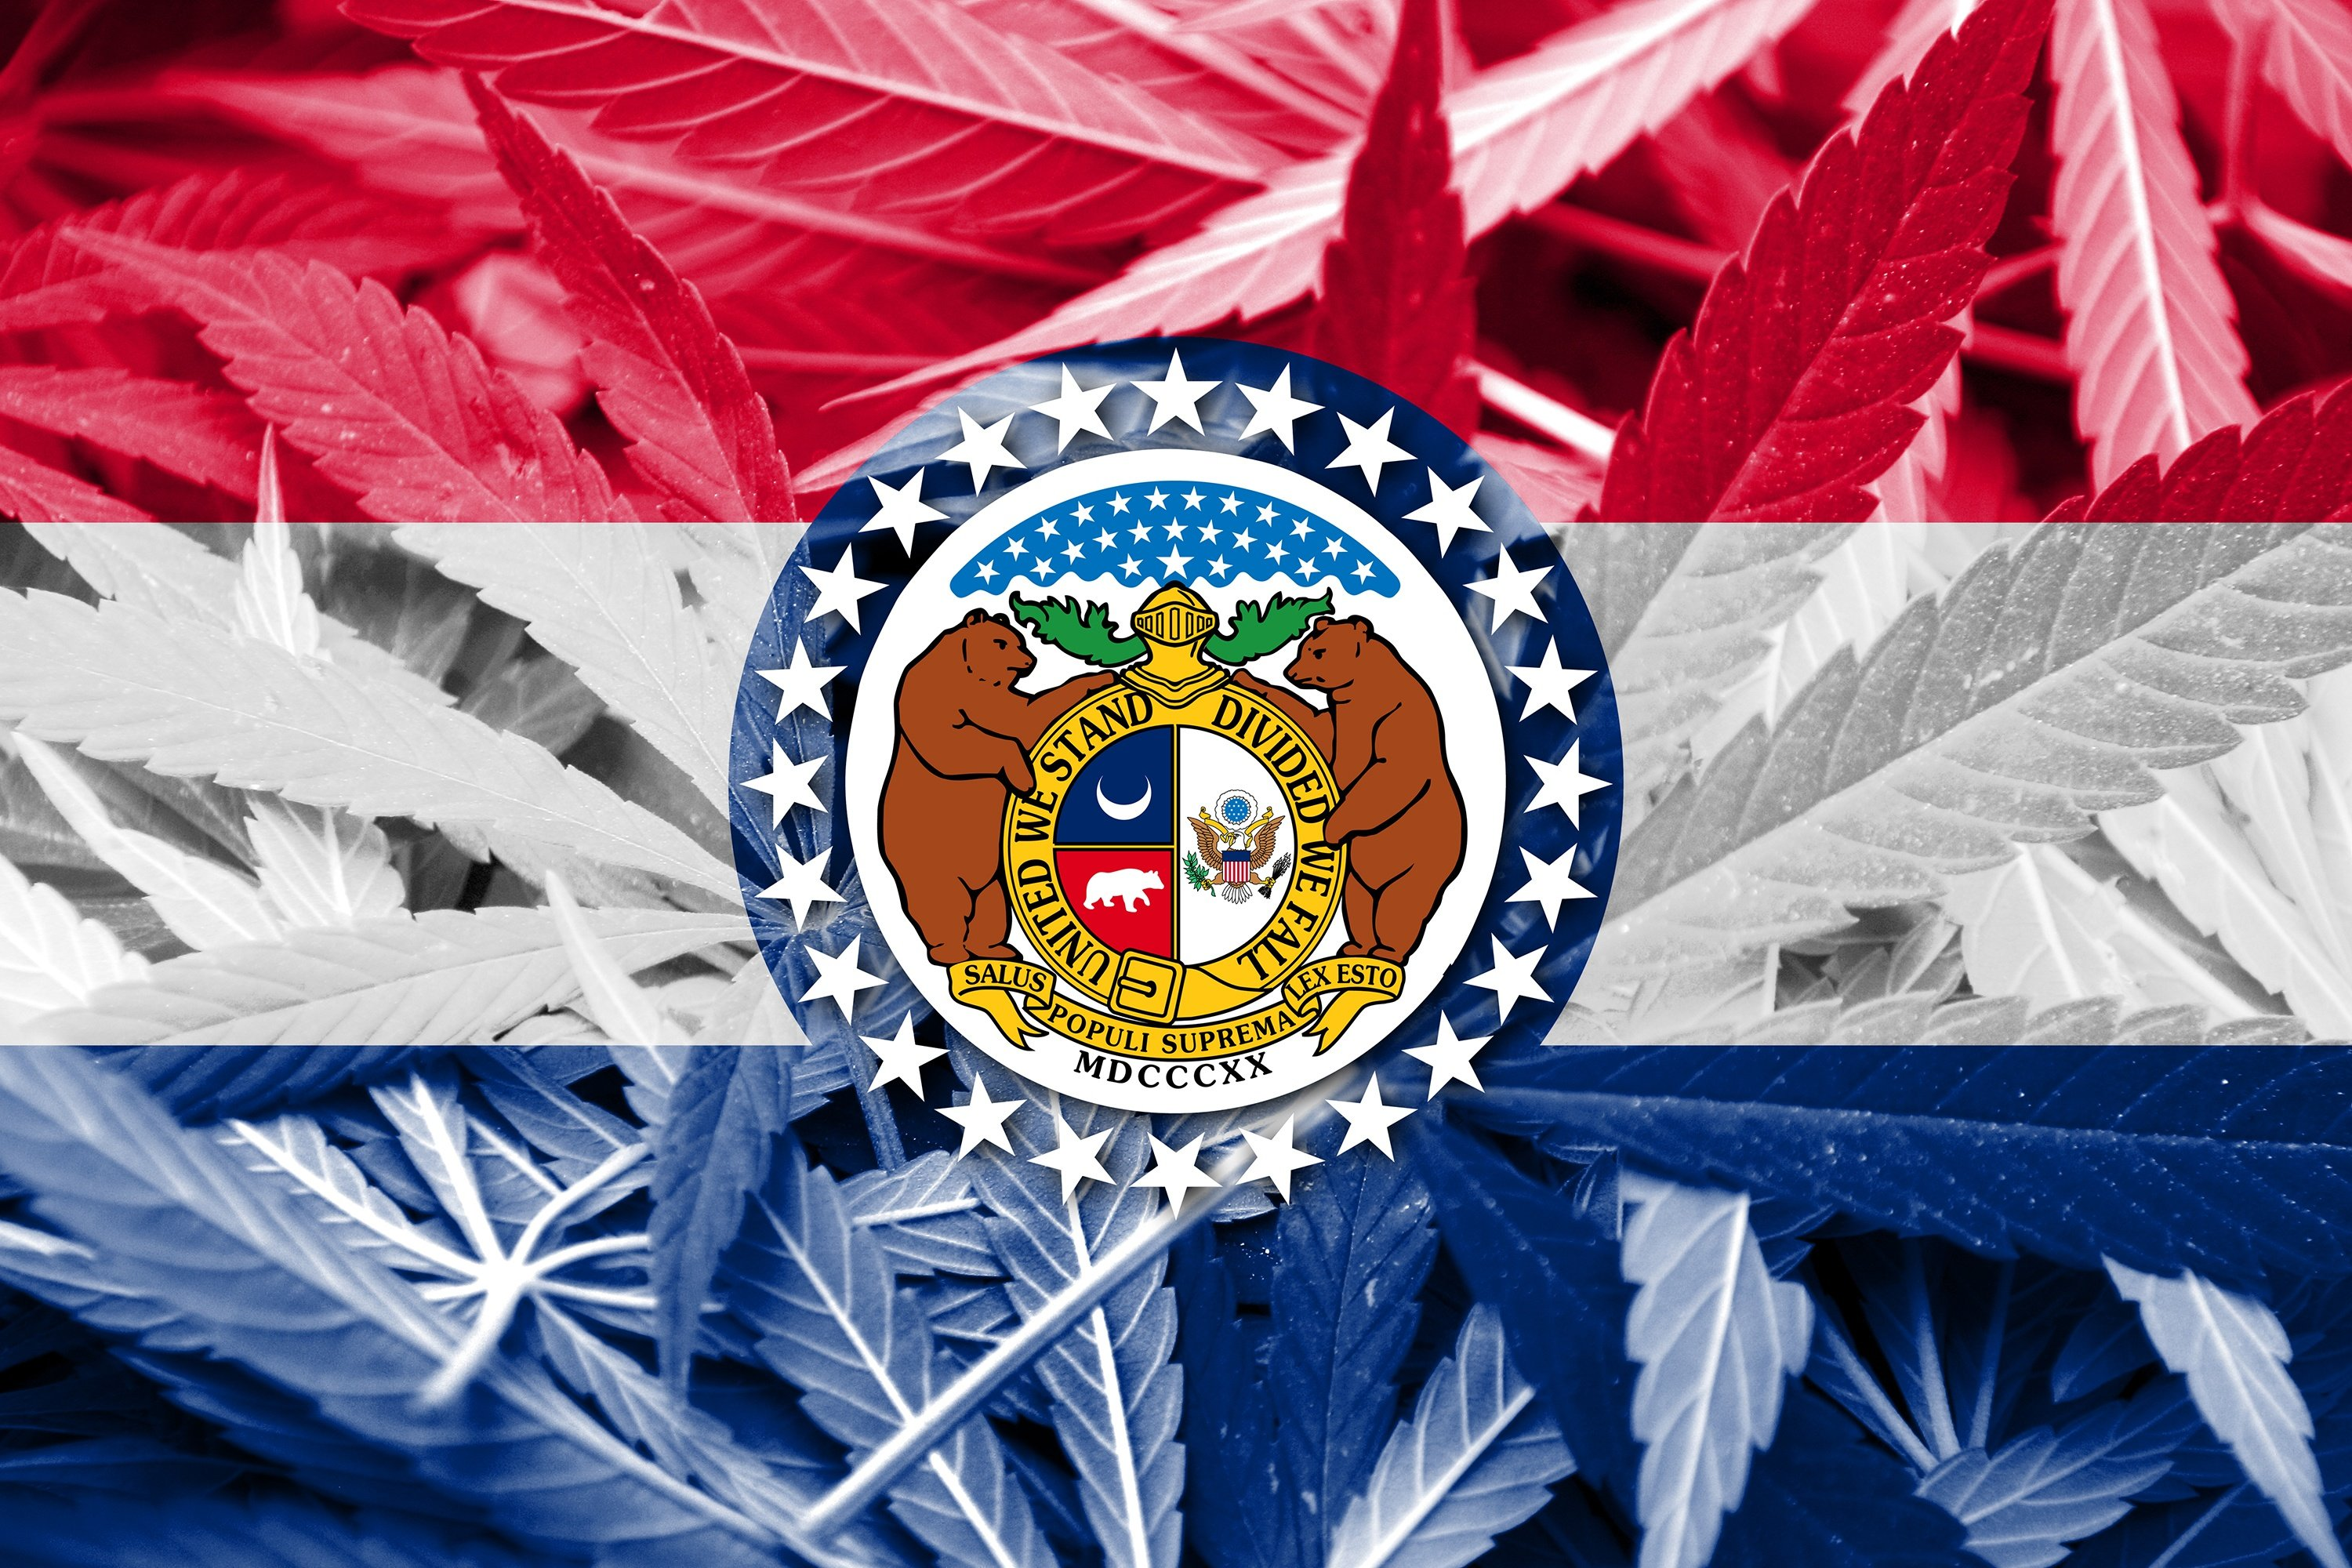 Missouri's New Medical Marijuana Program and Business Opportunities